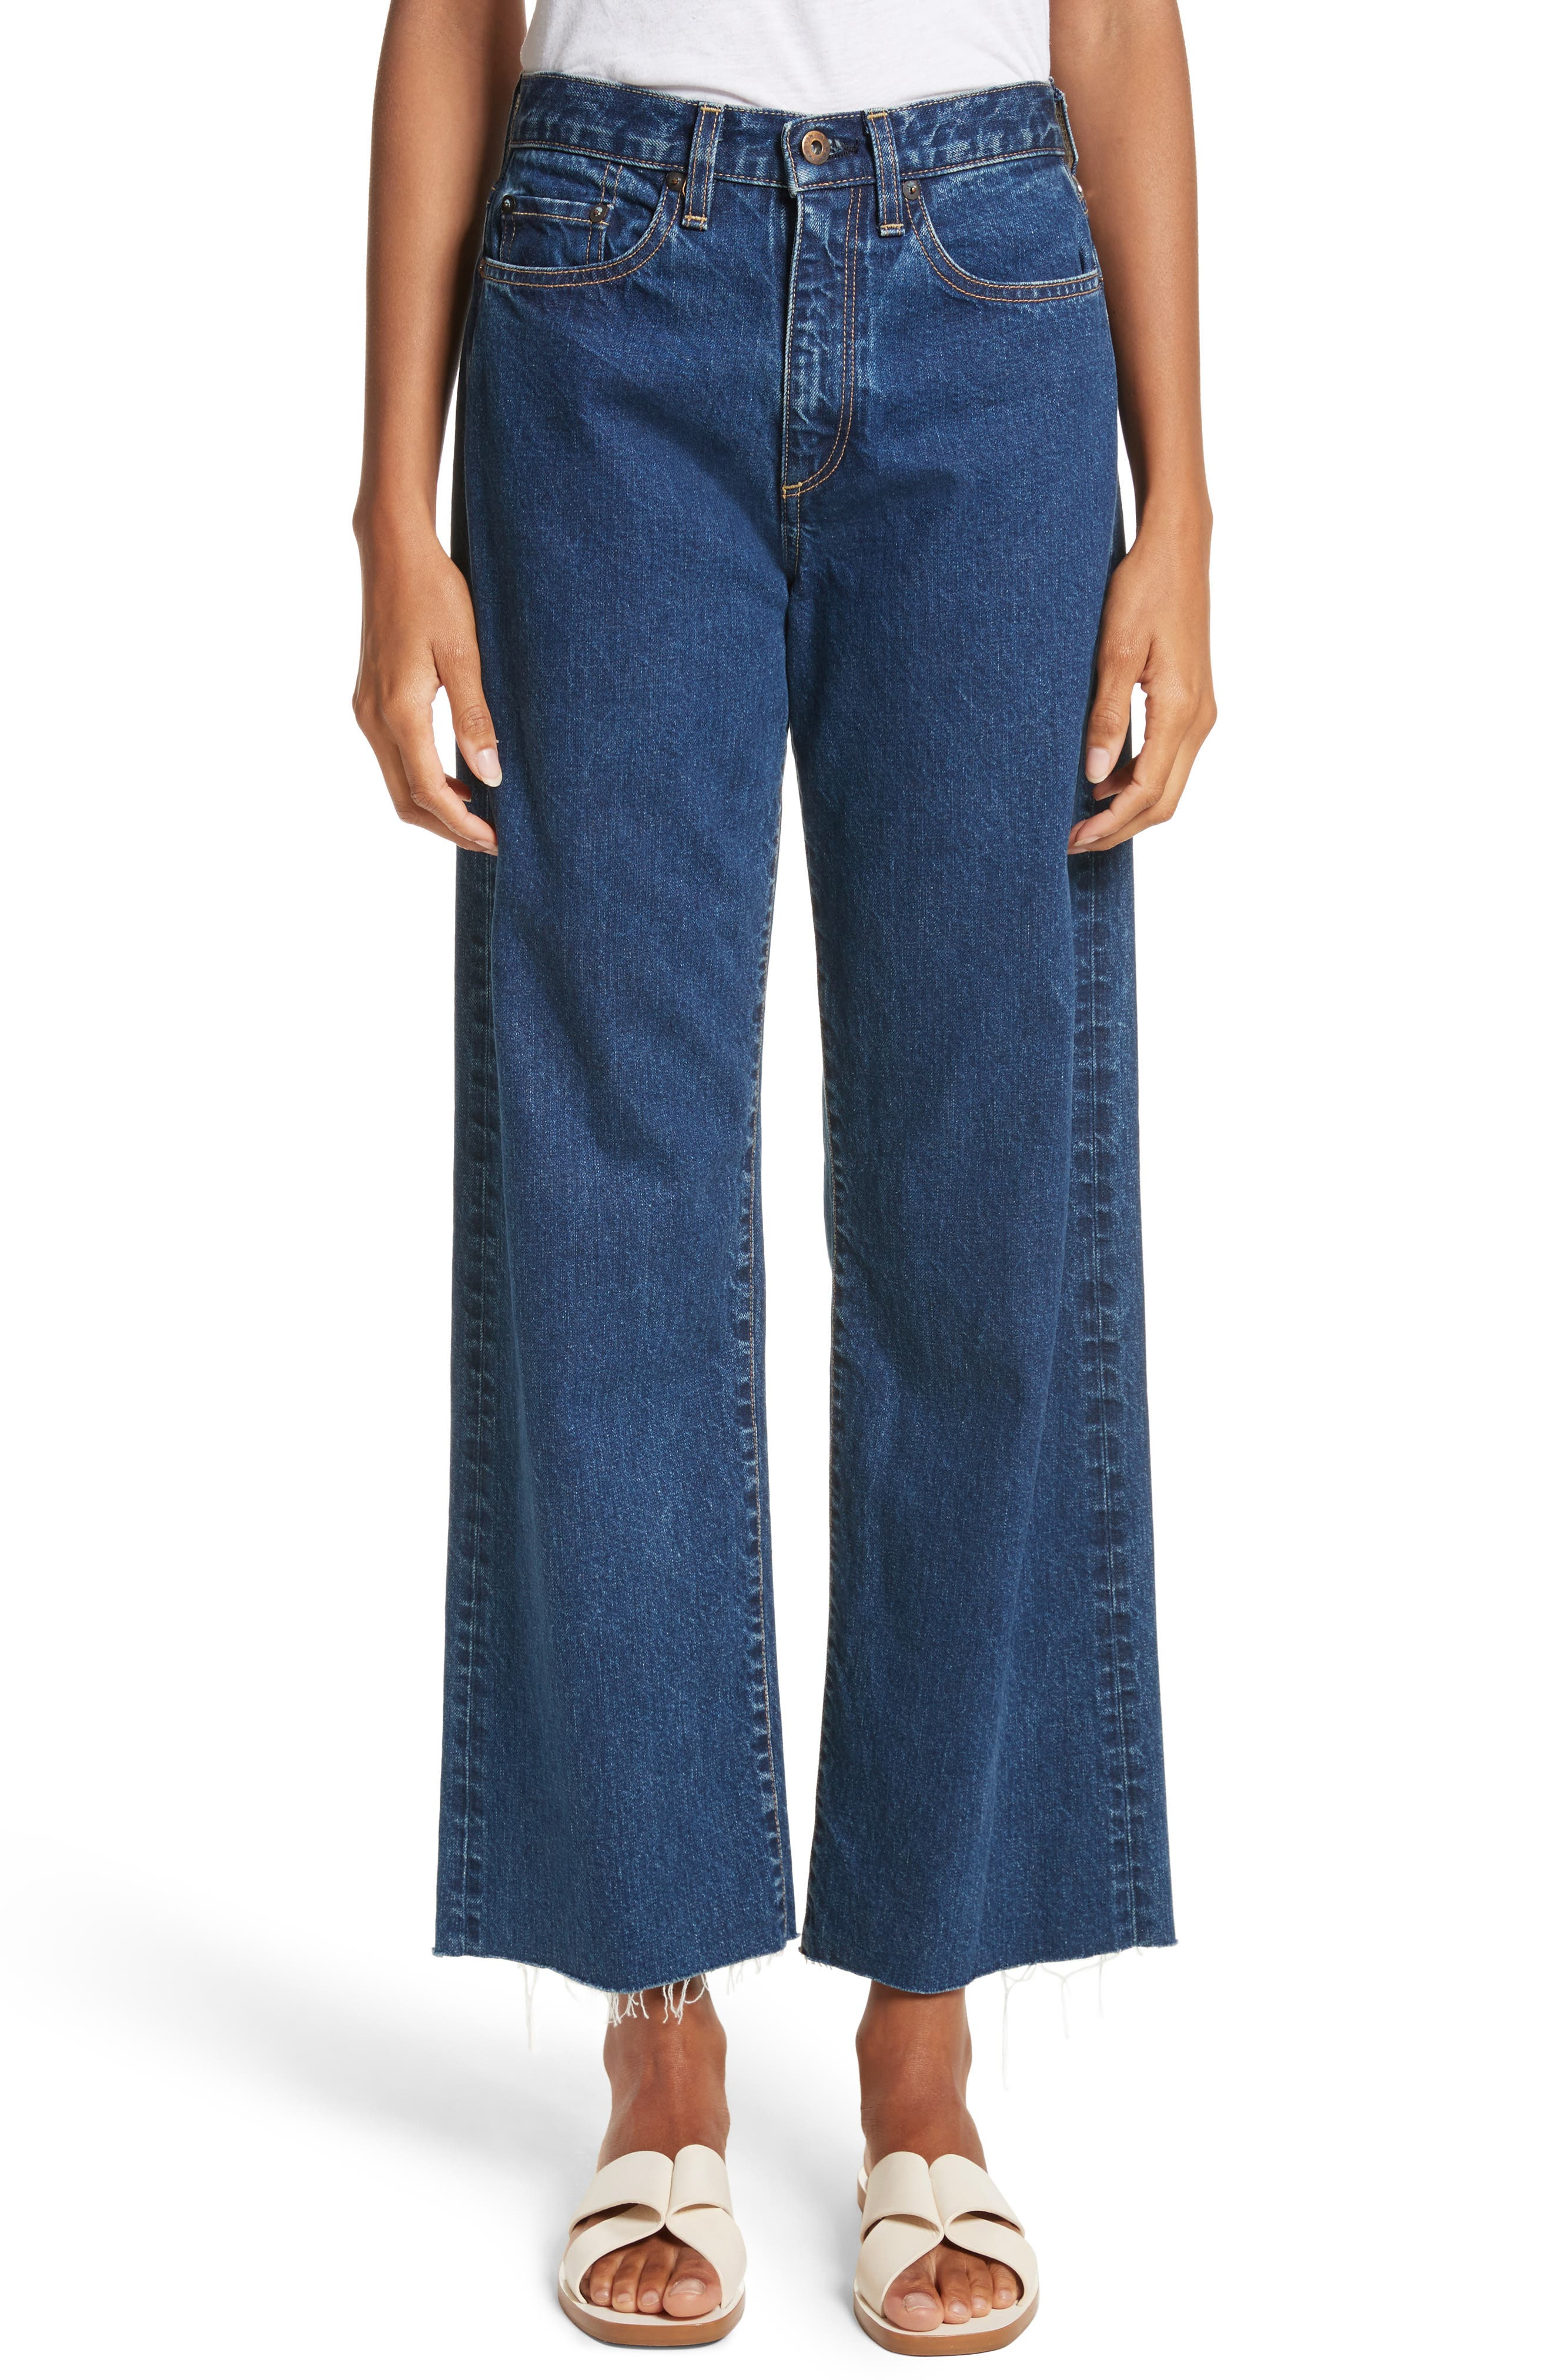 Toluca High Waist Wide Leg Jeans,                             Main thumbnail 1, color,                             Indigo